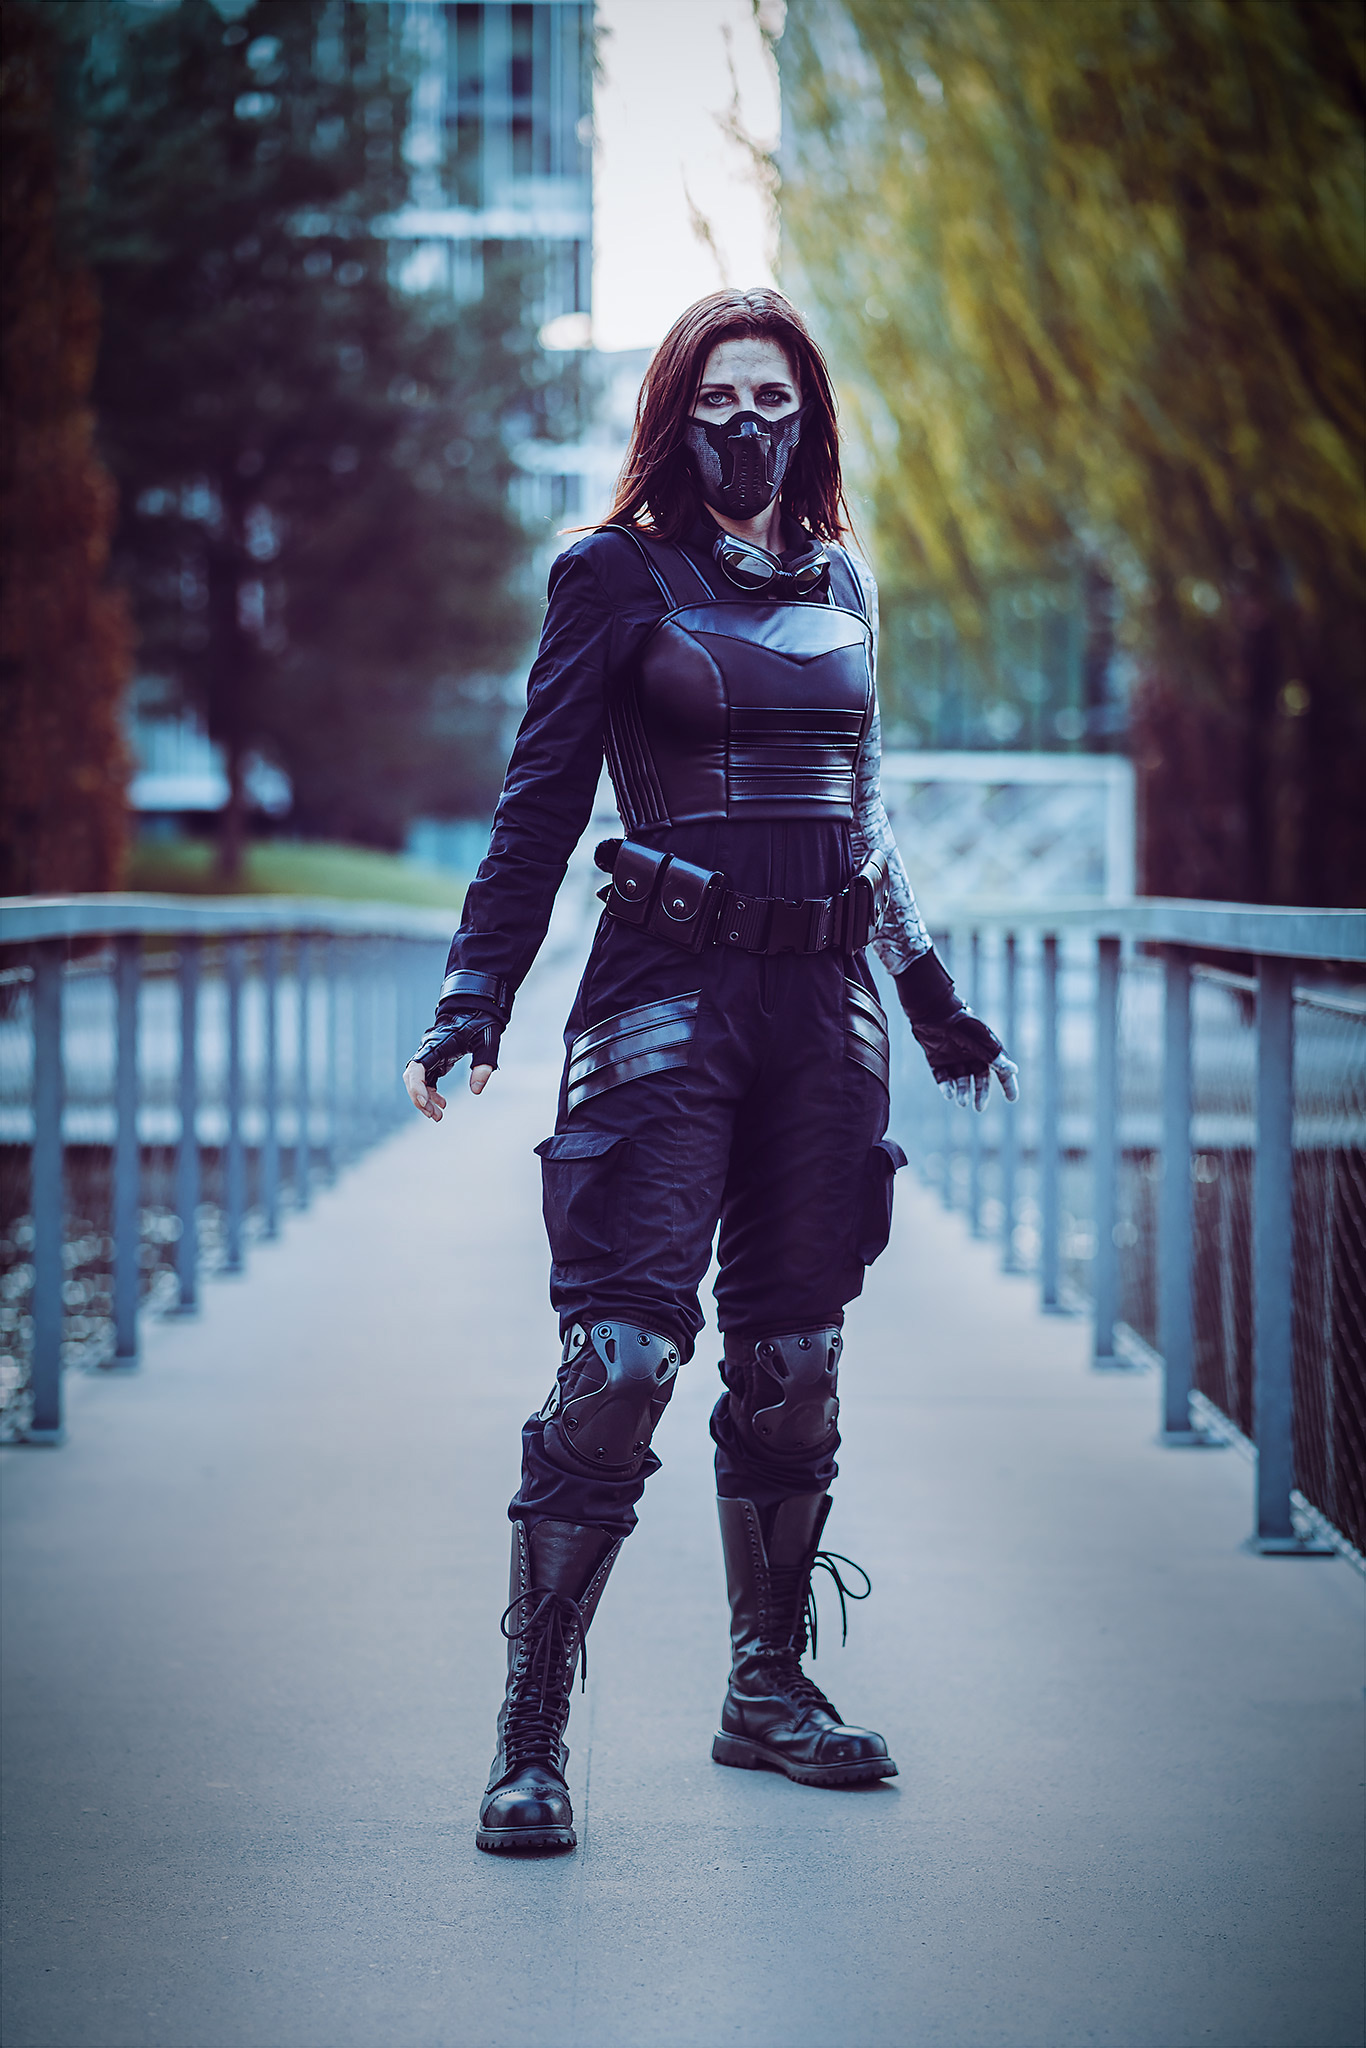 Bucky Barnes Winter Soldier Cosplay Costume